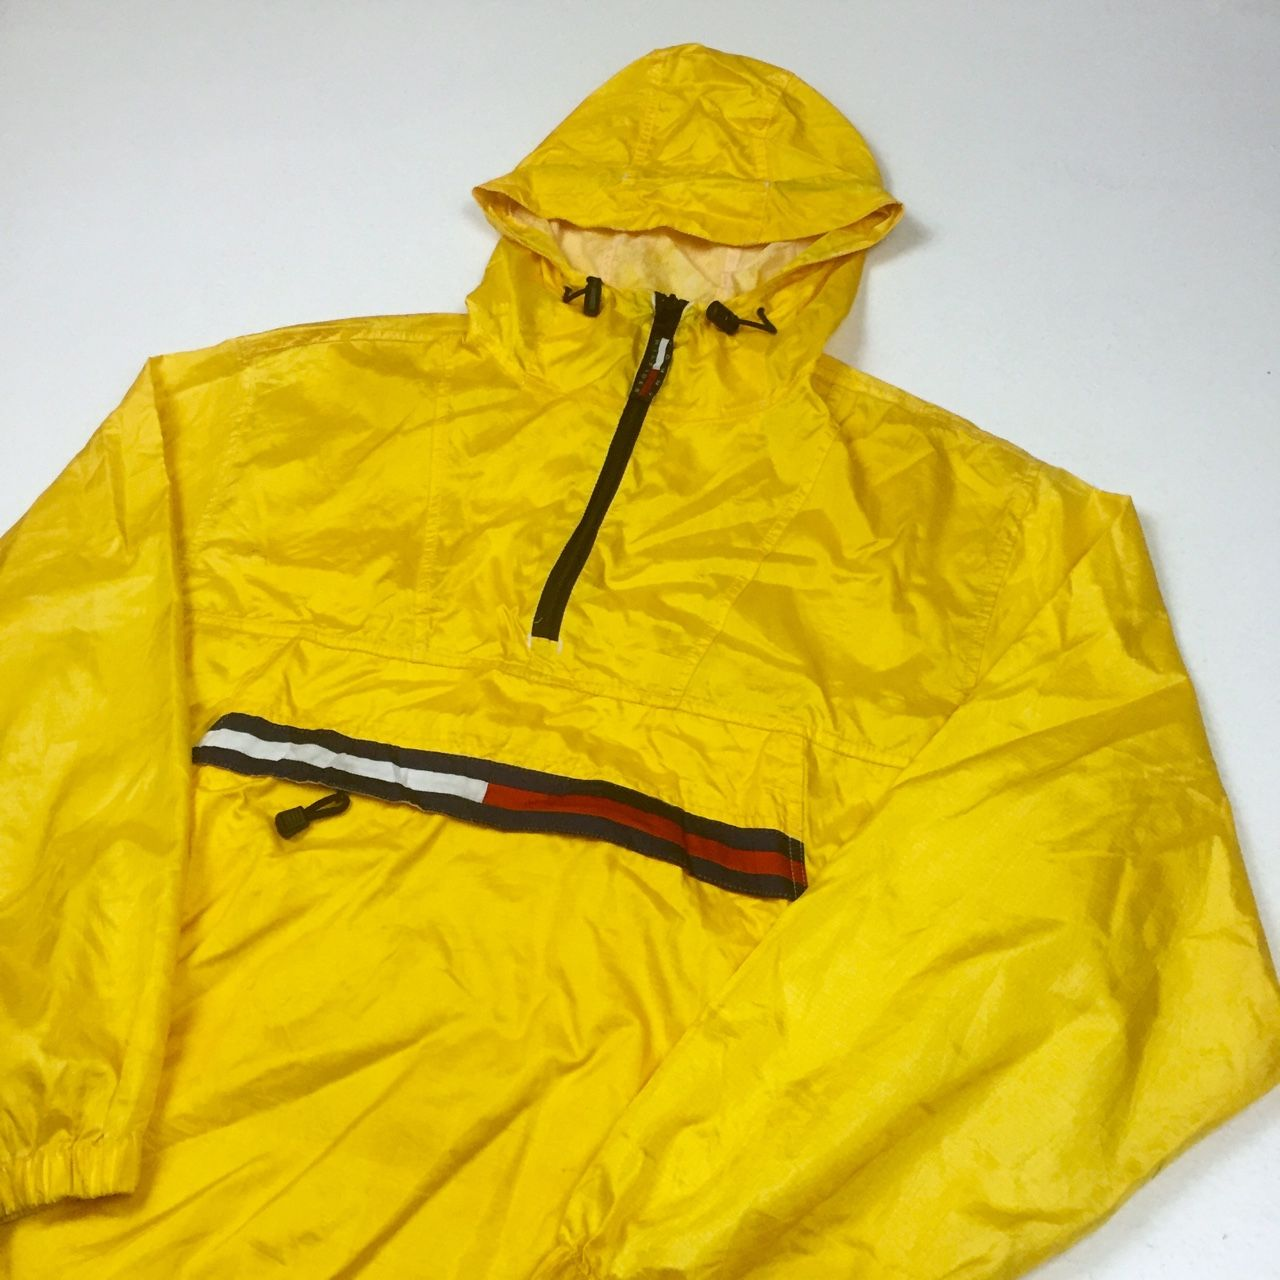 6a515d8d Tommy Hilfiger Yellow Pullover Rain Jacket • Size Medium, fits oversized •  Shows some signs of wear as pictured as you'd expect from a vintage piece